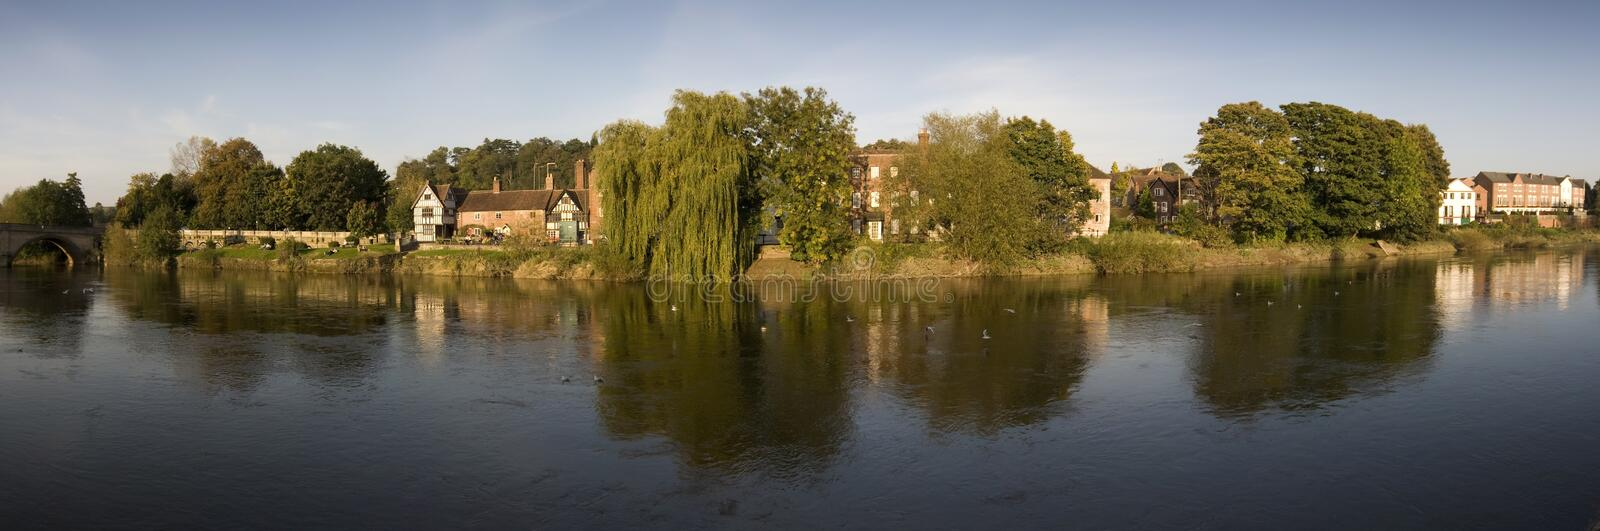 bewdley photo libre de droits